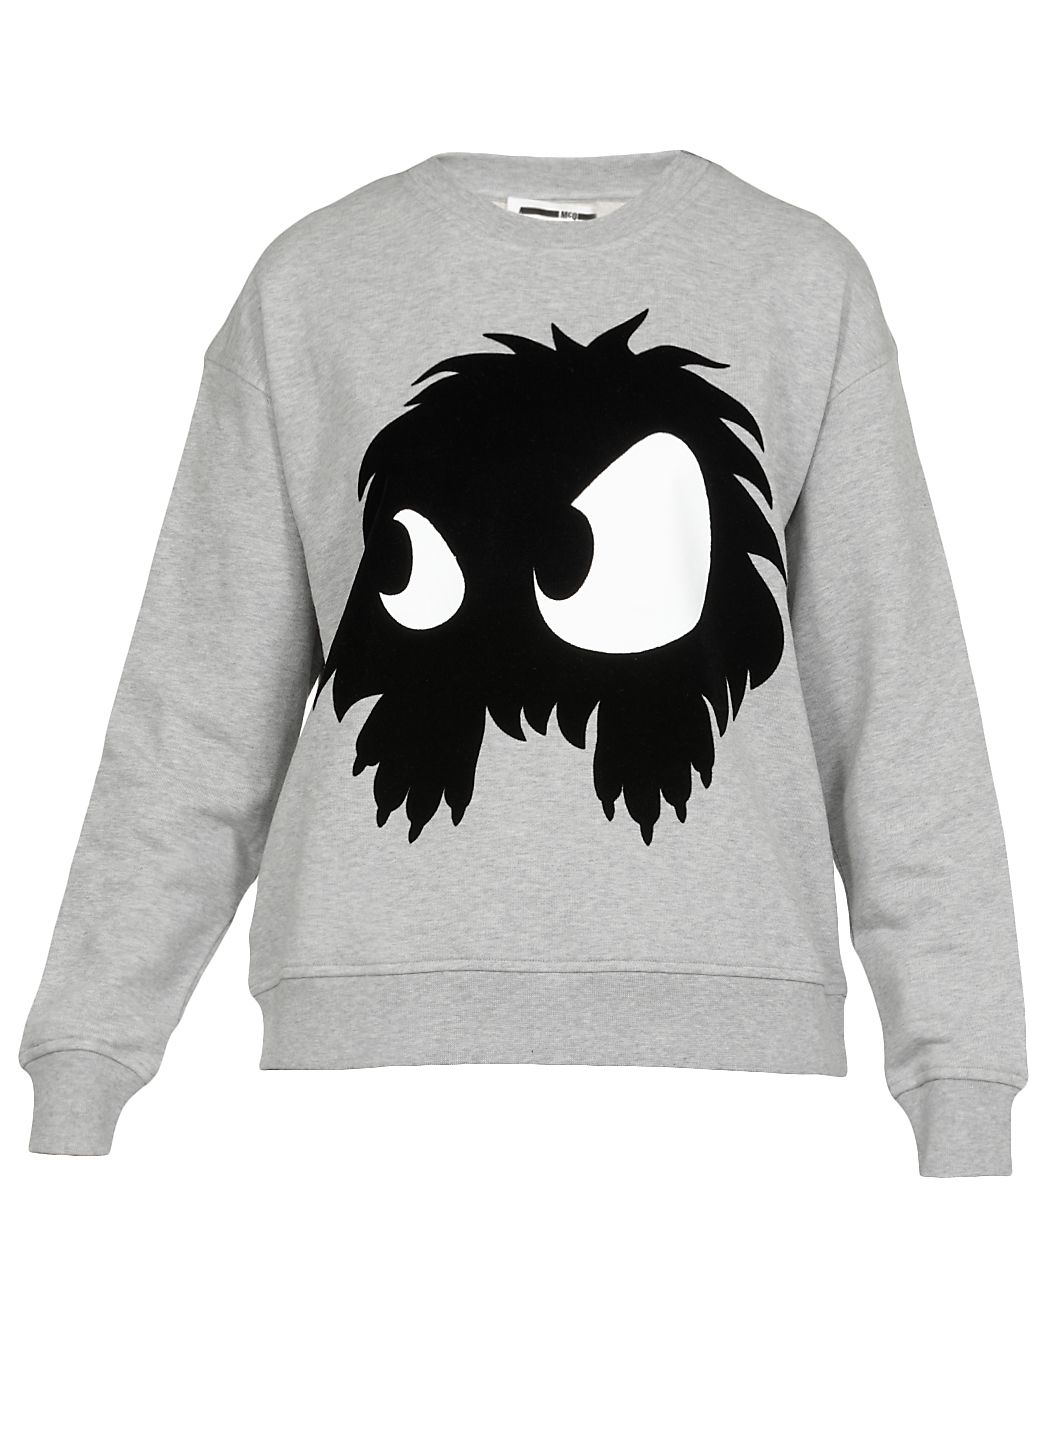 Psycho Billy sweatshirt